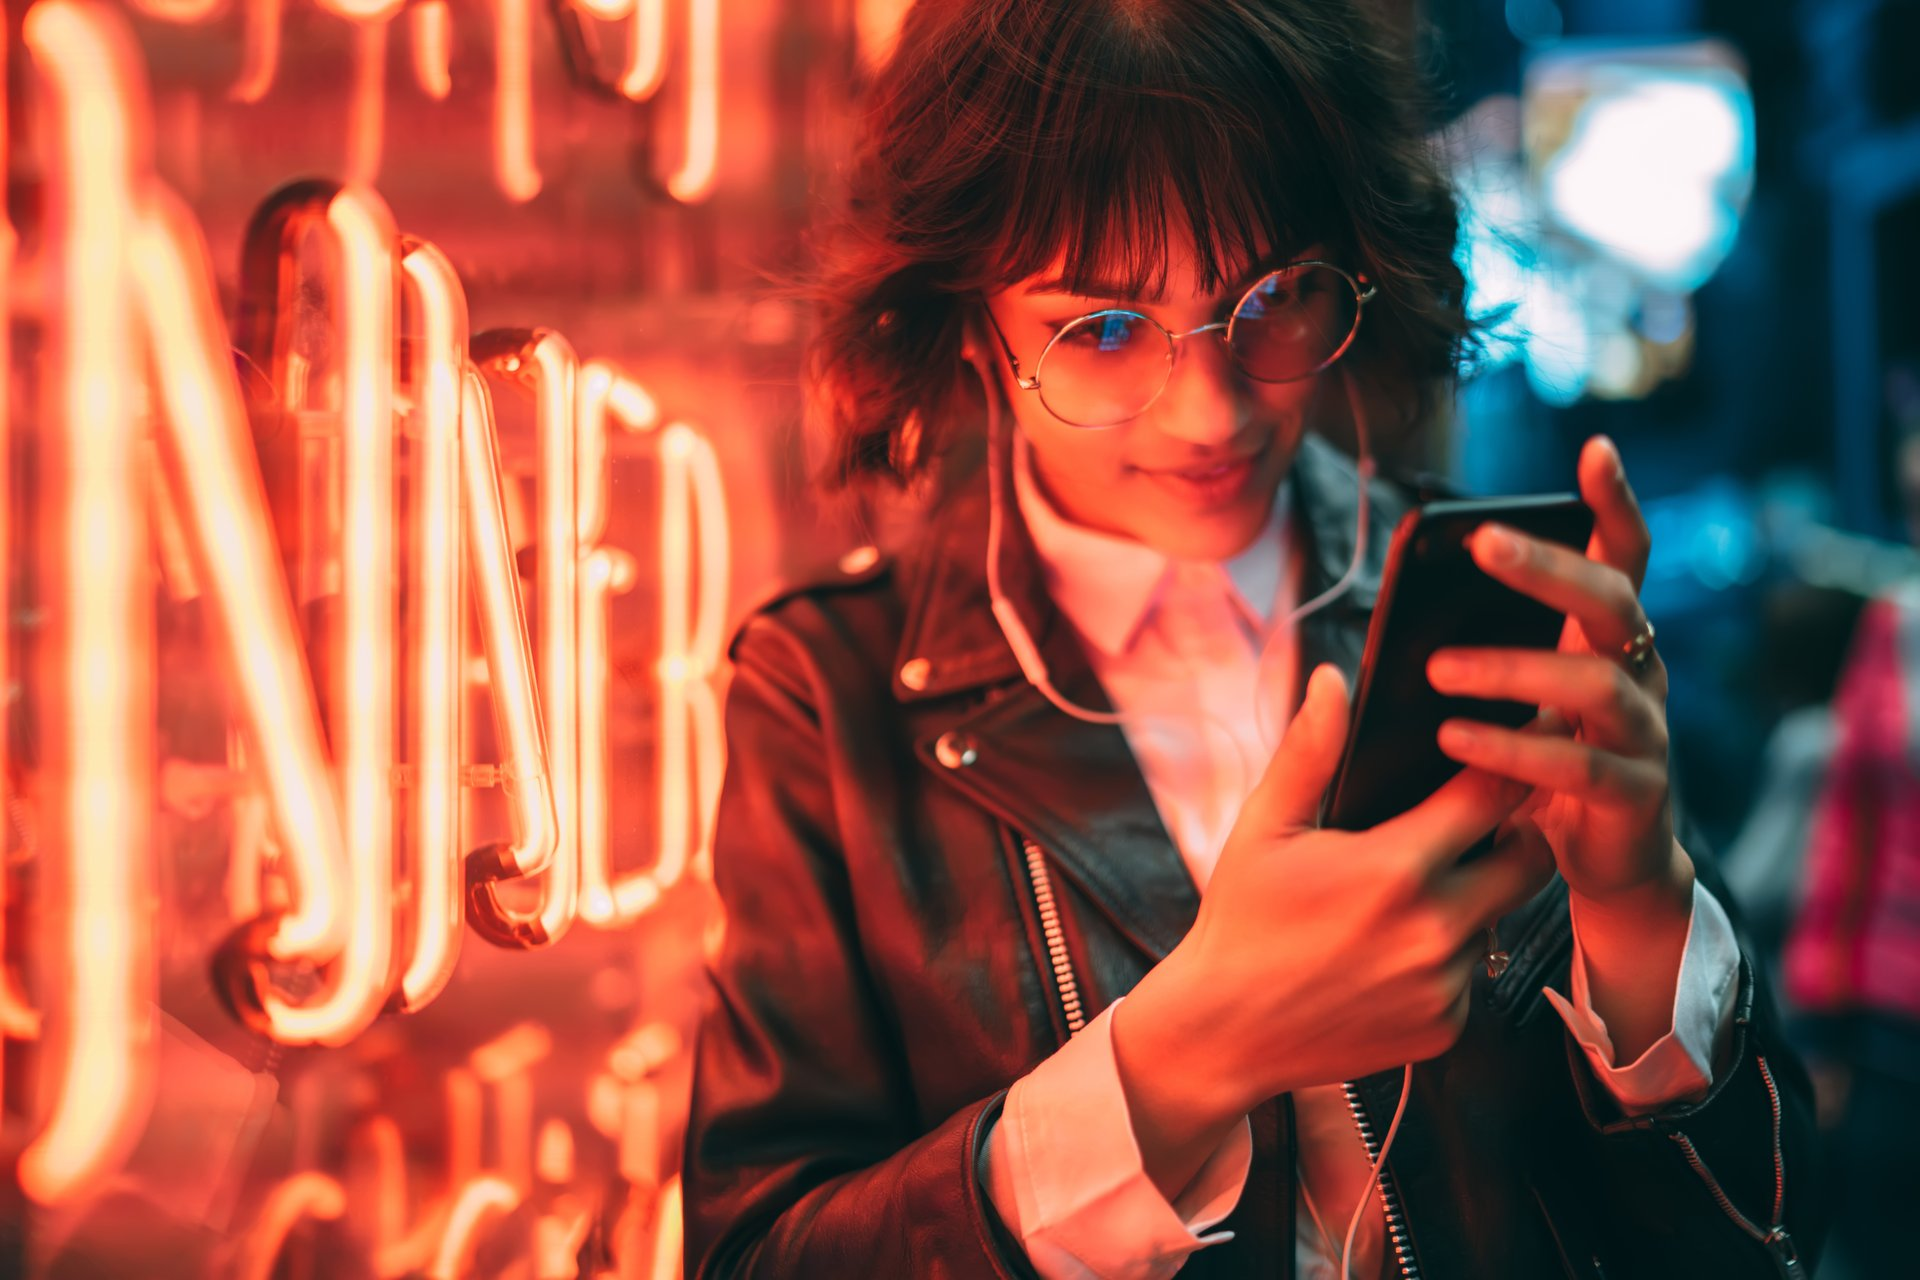 Person on cellphone near neon lights